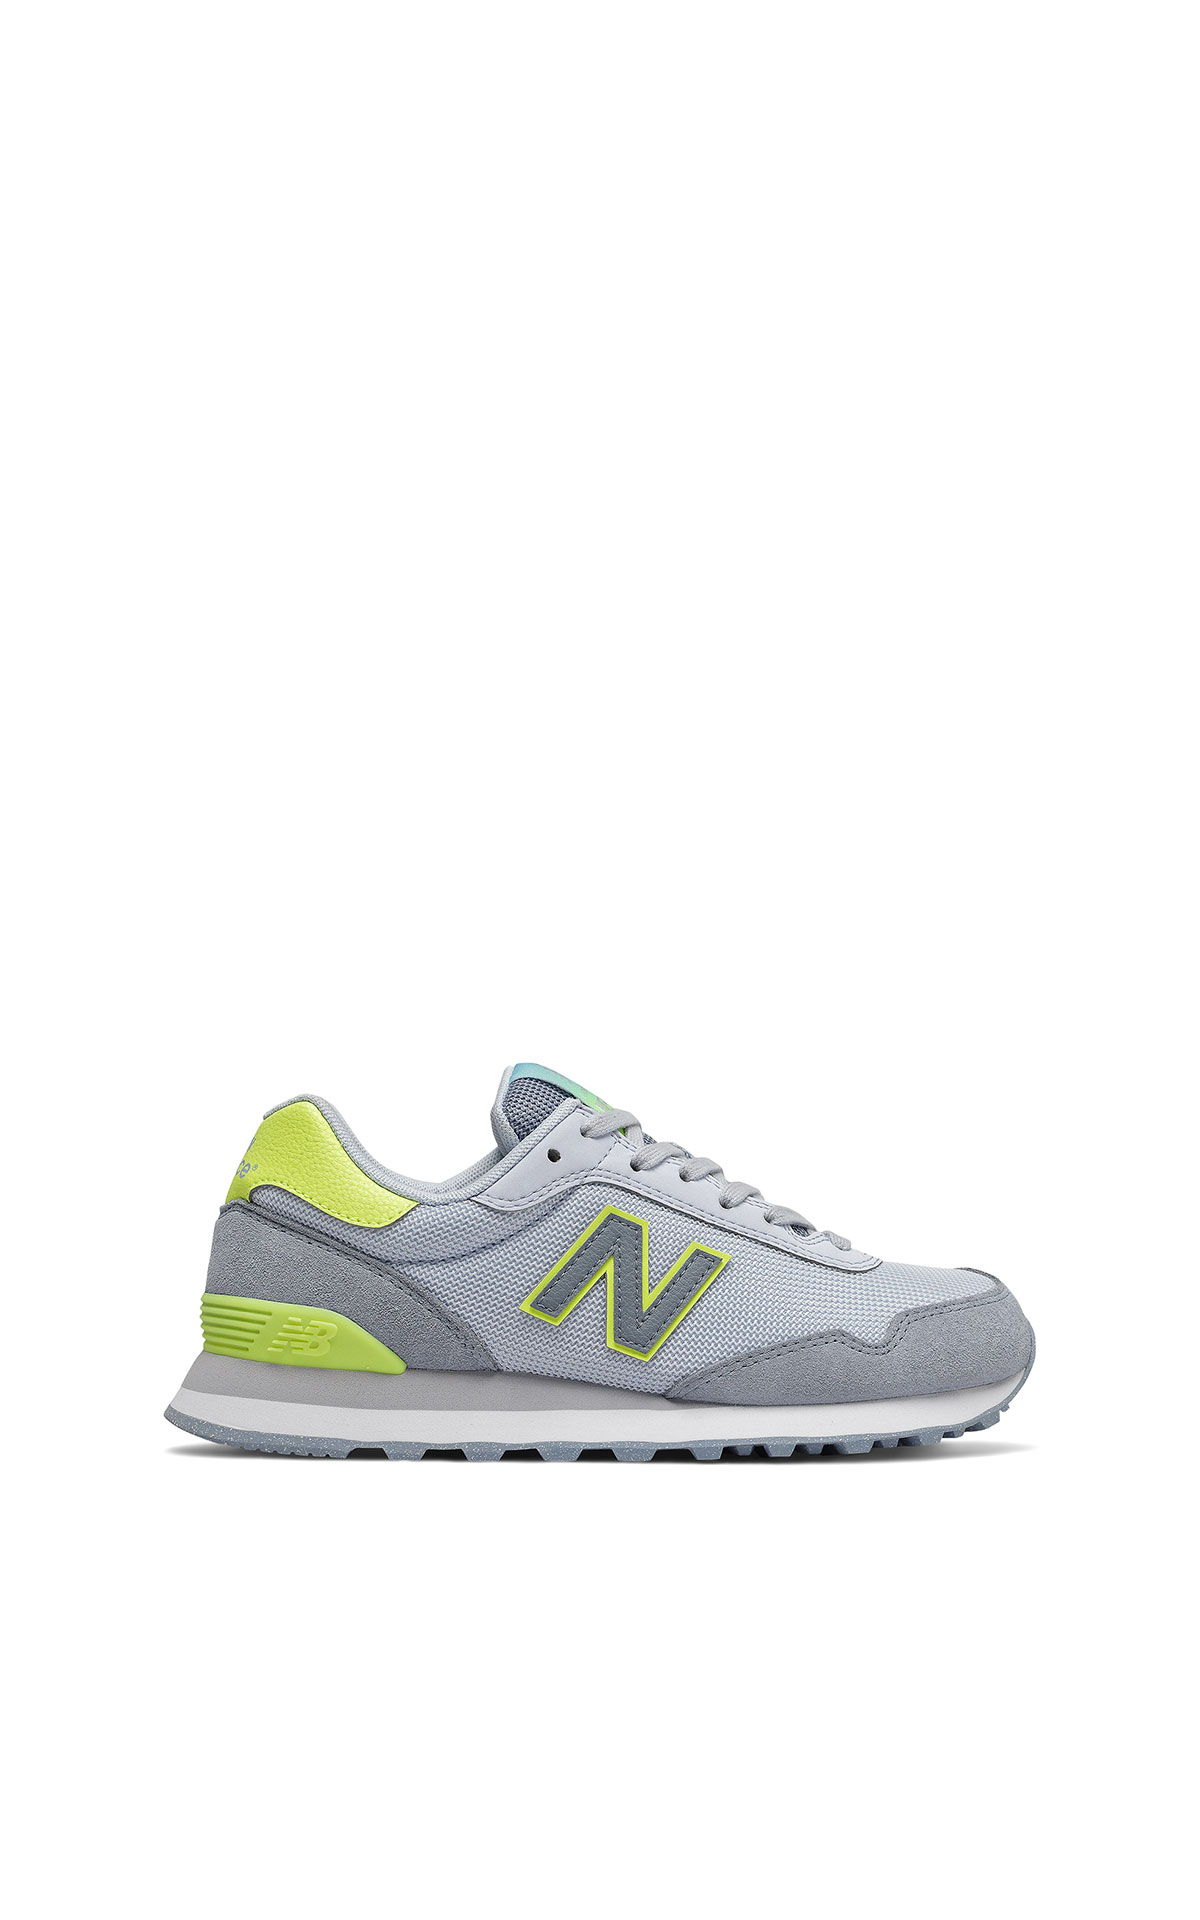 New Balance 515 from Bicester Village